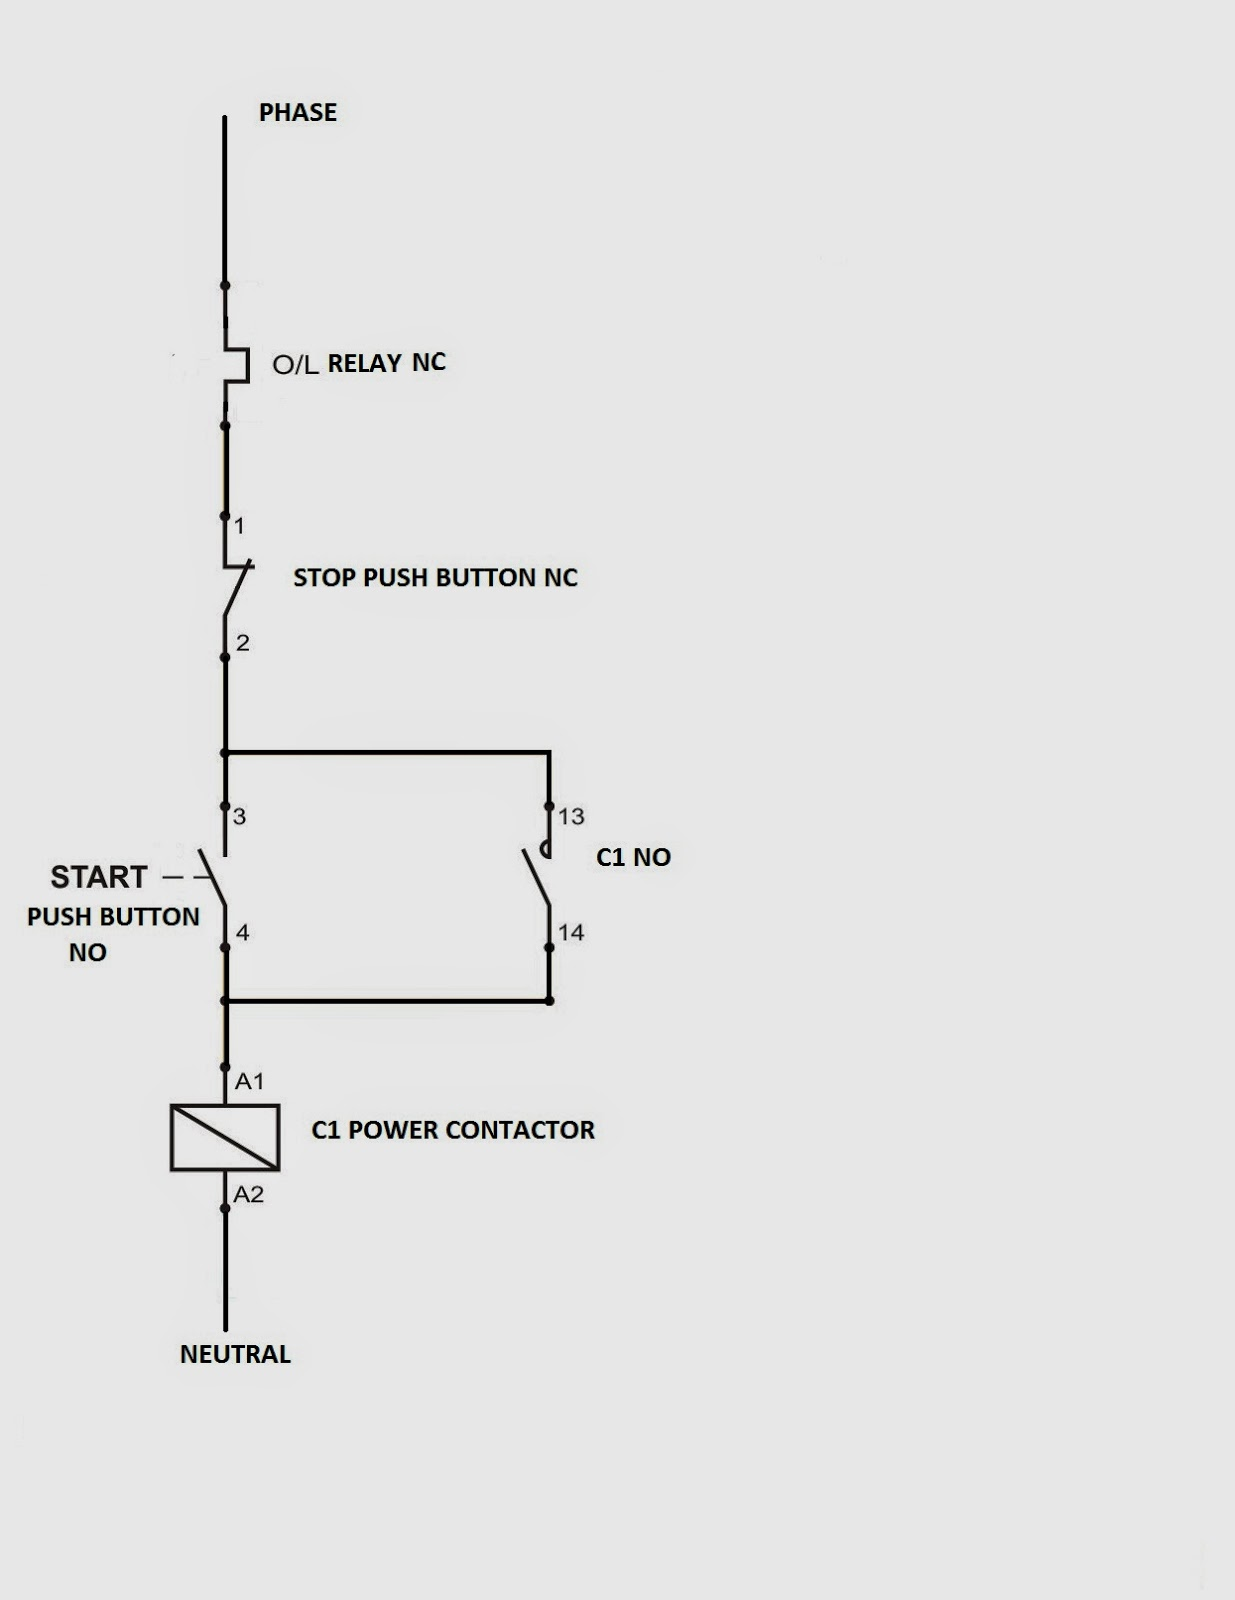 hight resolution of 1 when start button normally open no is pressed supply is connected to the motor through power contactor c1